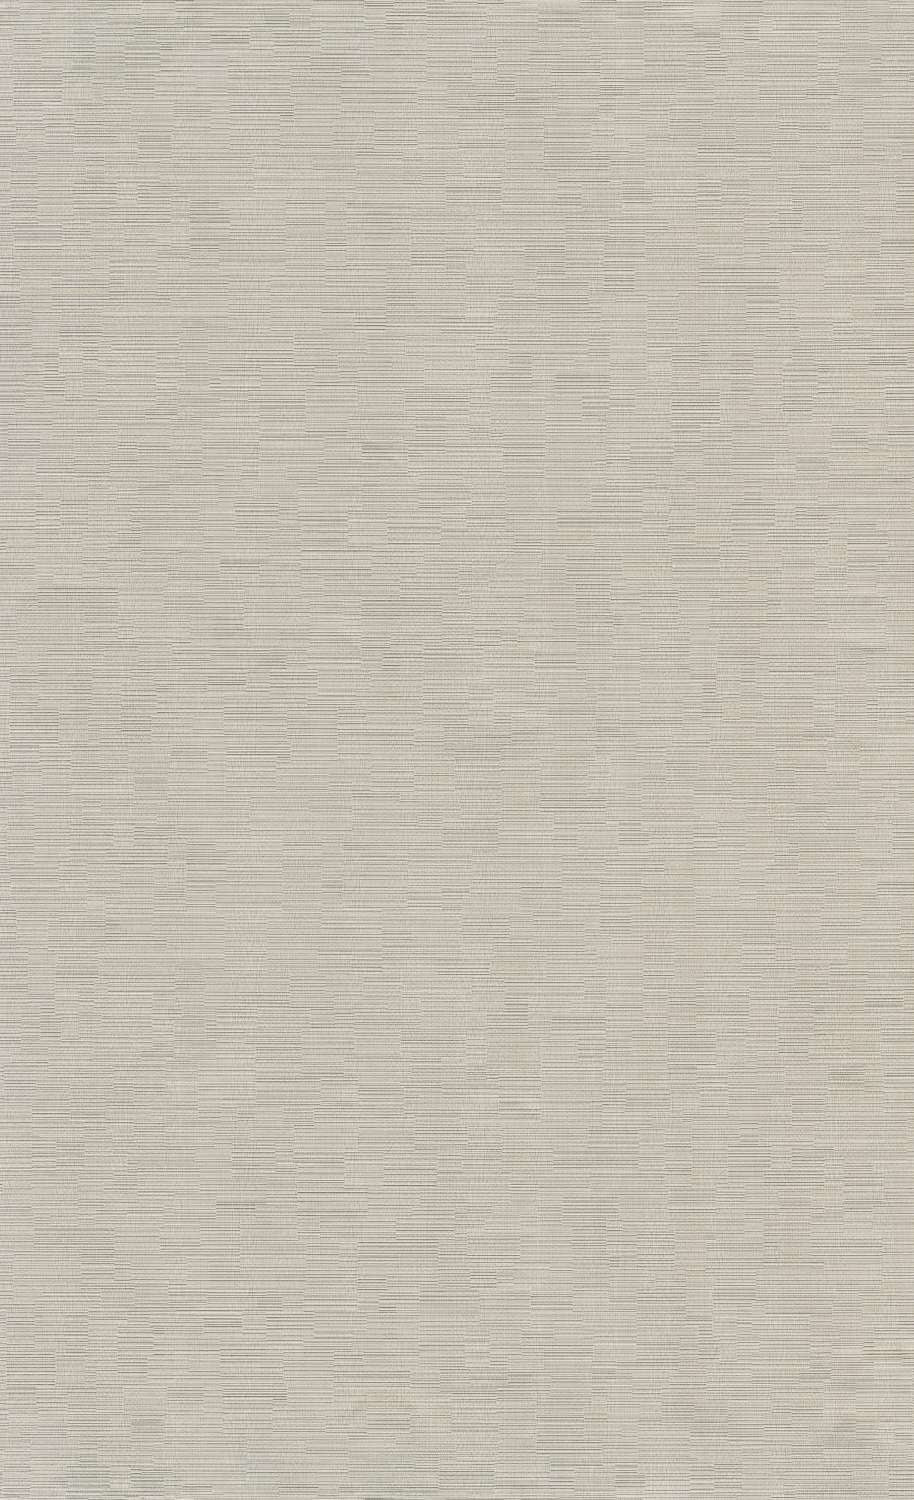 Ash Gray Plain Vinyl Wallpaper C7312 | Modern Commercial and Hospitality Wall Covering